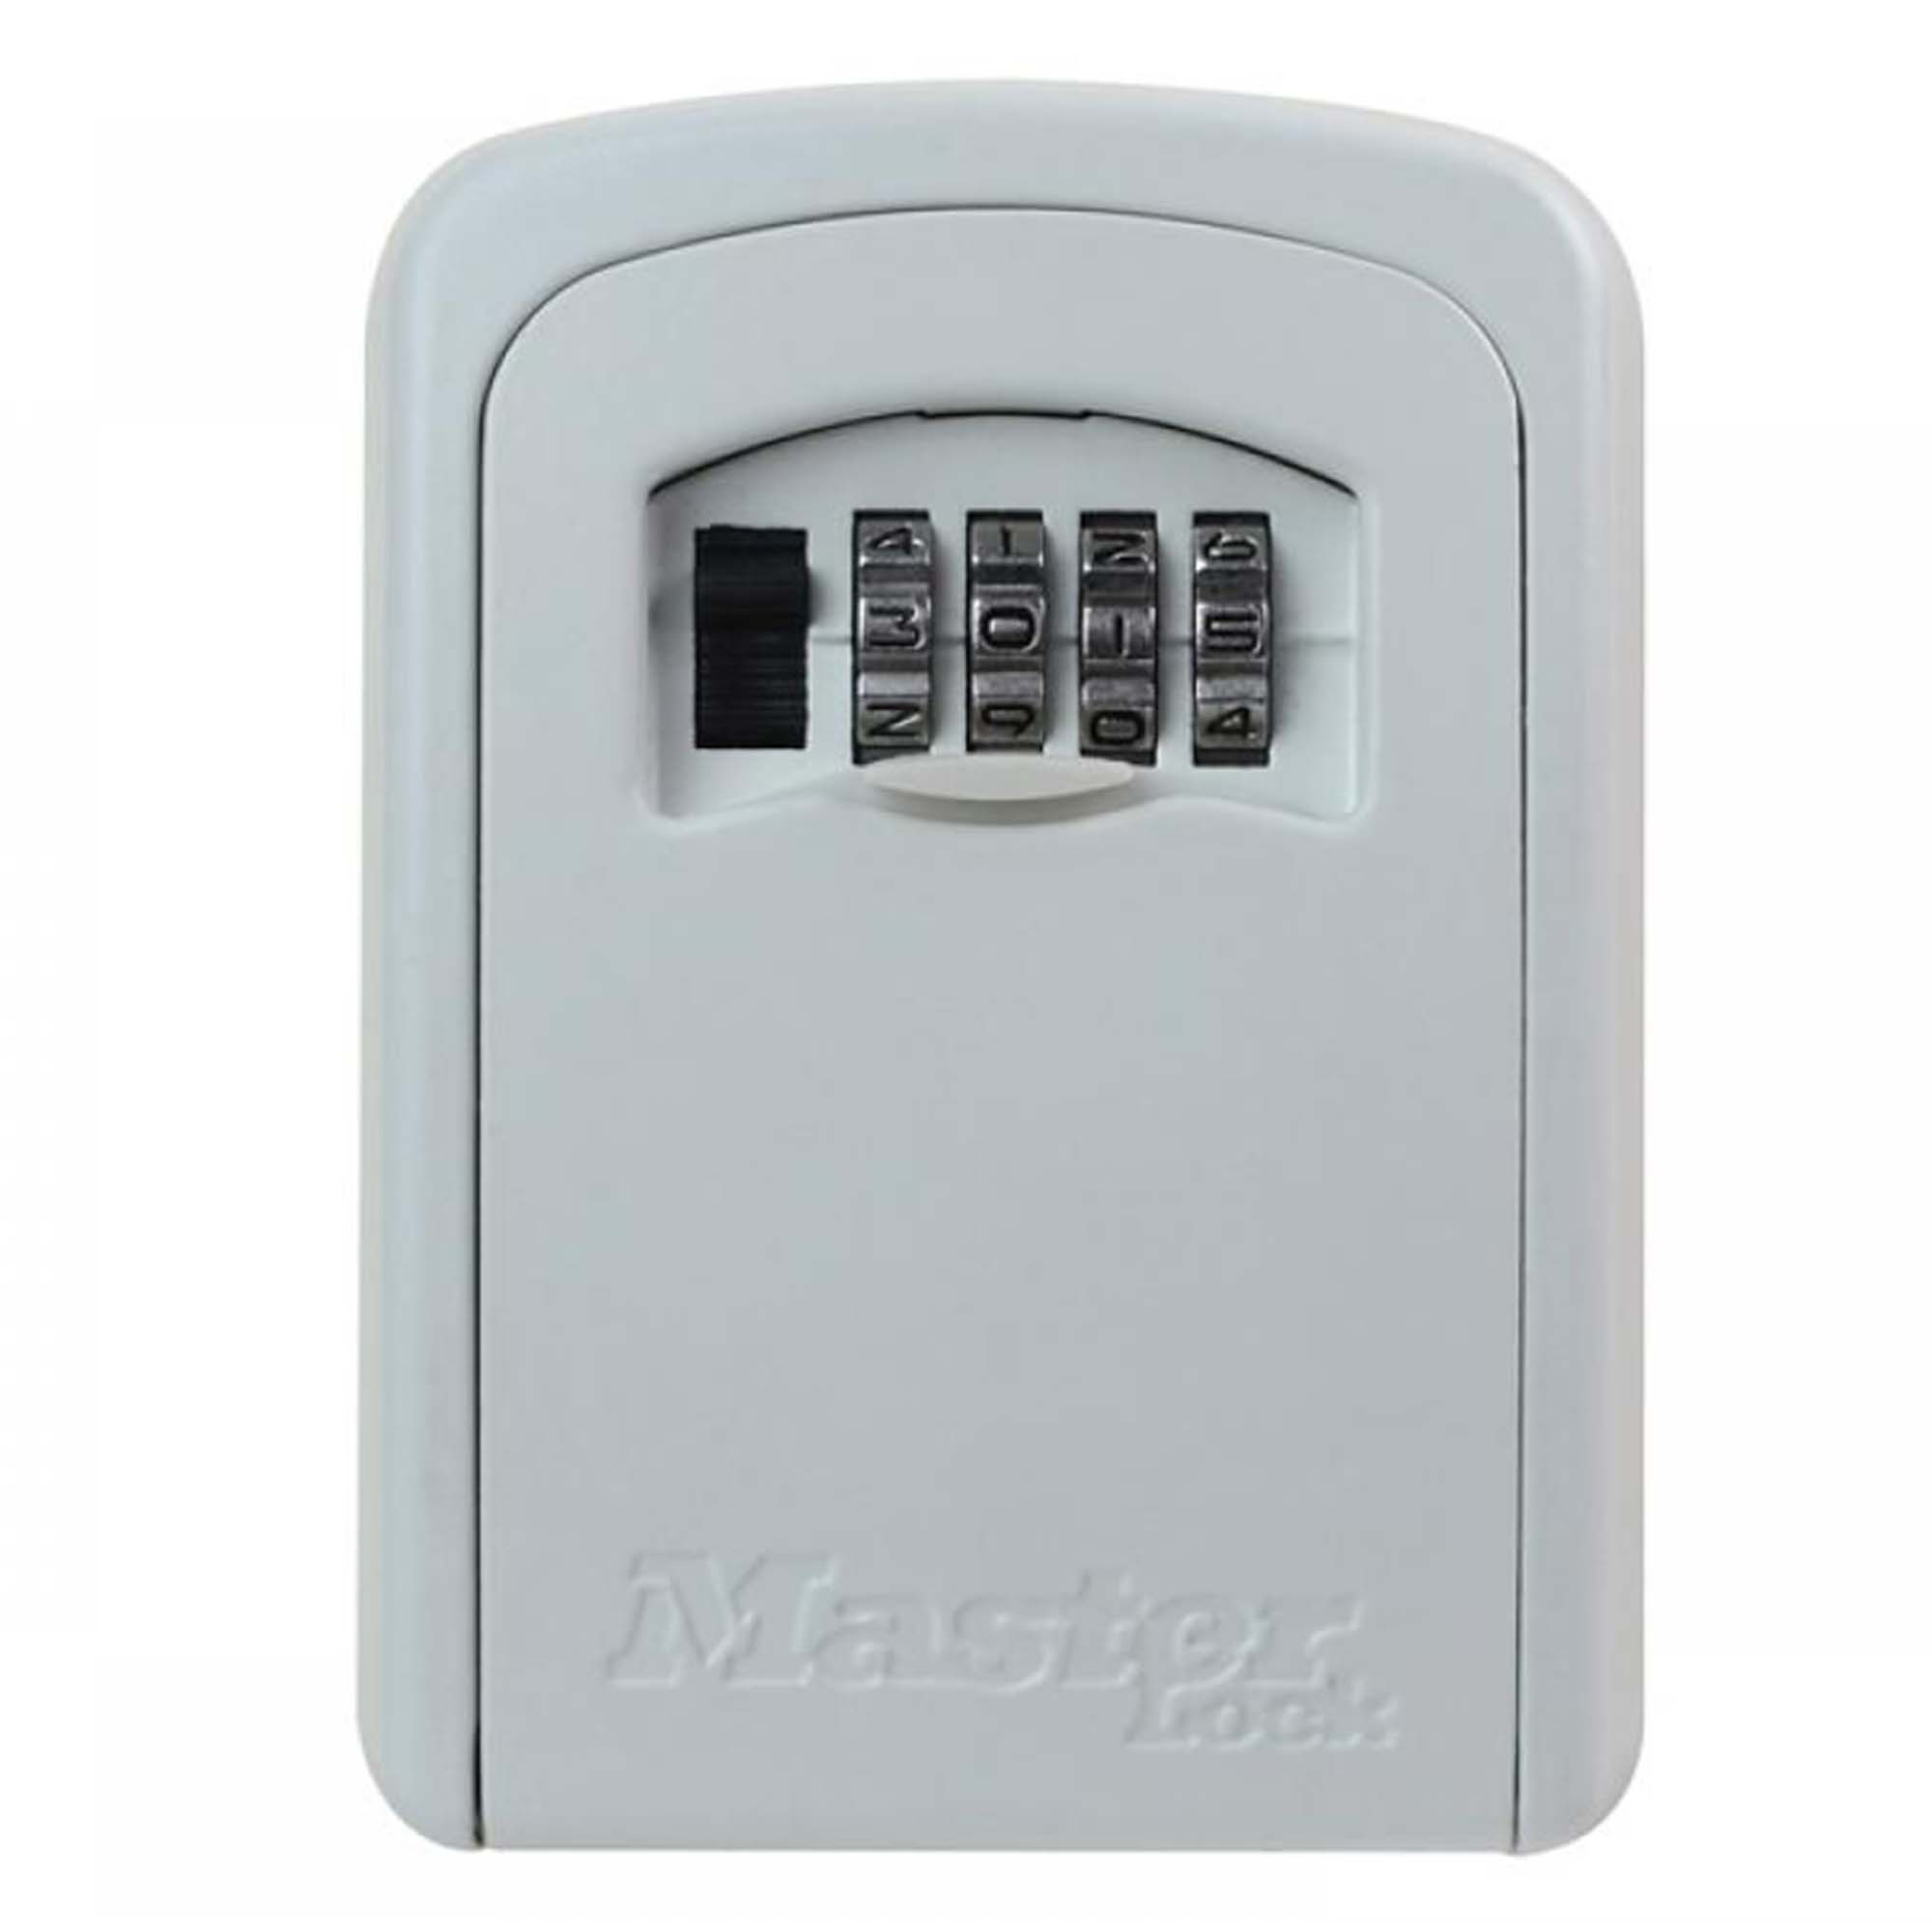 0cb076f7b770 Master Lock,5401EURDCRM,Wall Mounted Key Storage Security Lock Box - Cream